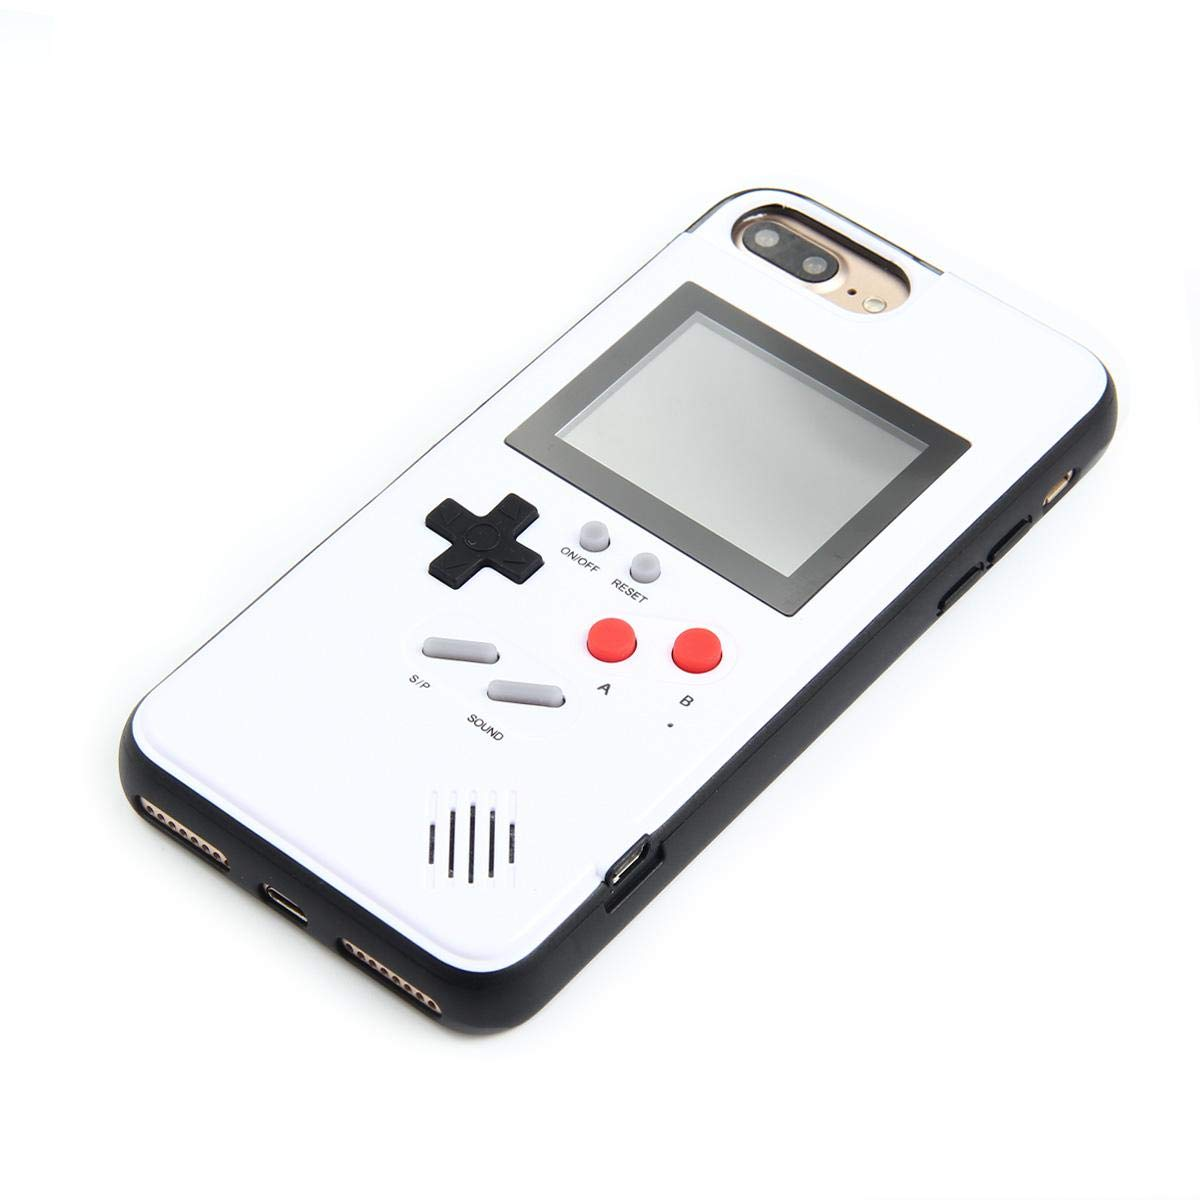 Womdee Game Console iPhone Case, Handheld Game Console Case Cover with 36 Games Phone Case (iPhone 6p/7p/8p, White) by Womdee (Image #3)